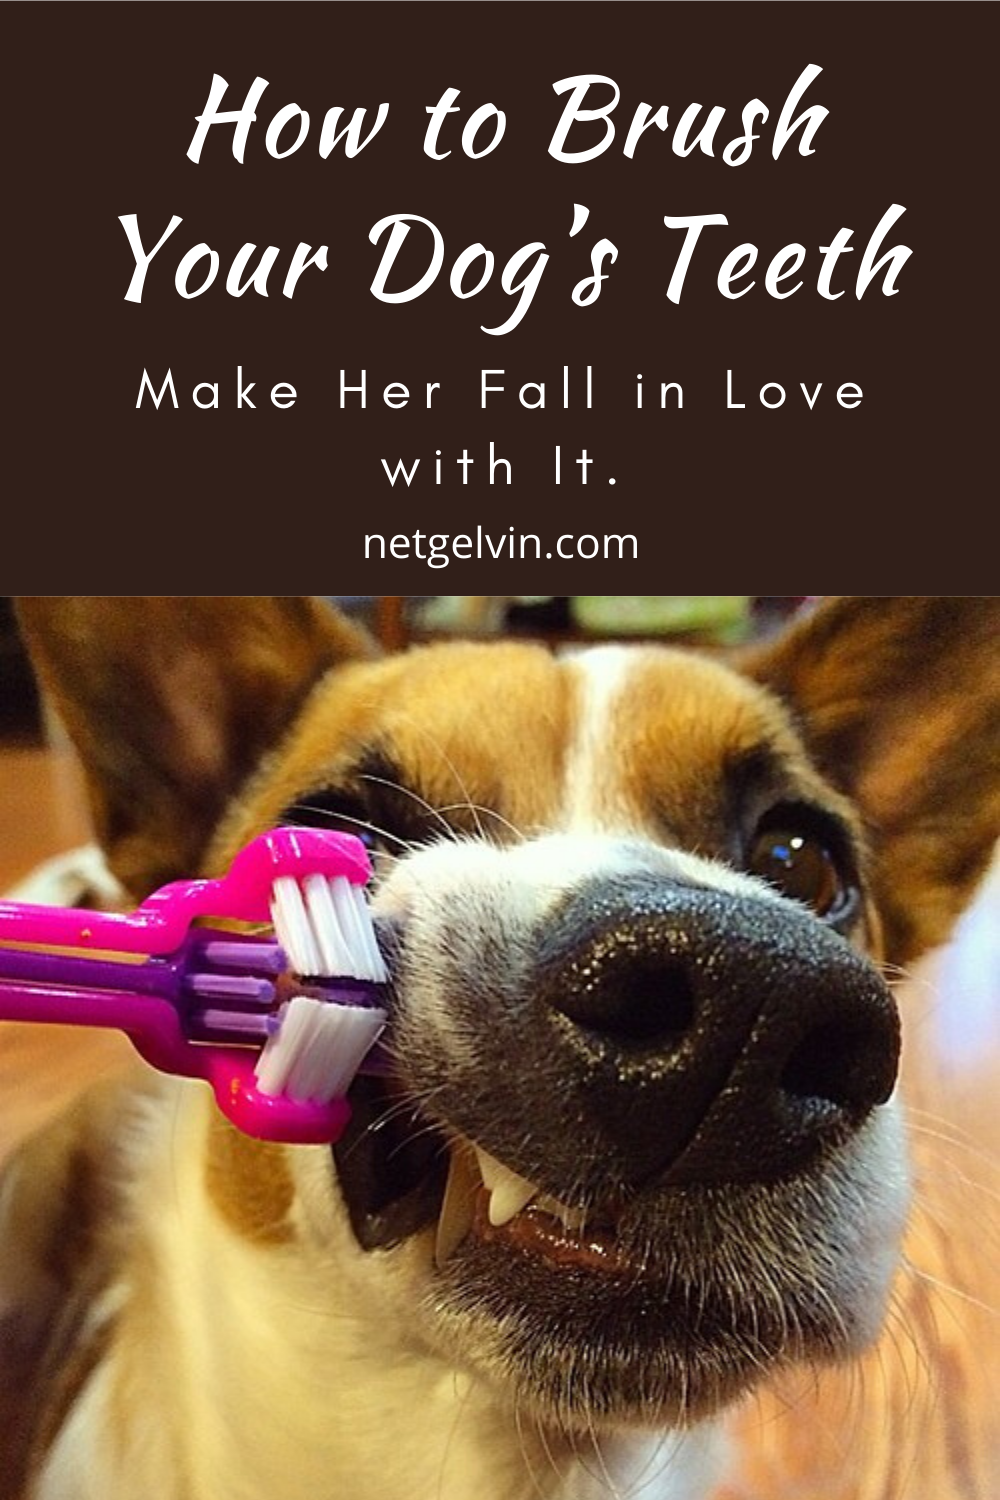 How To Brush Your Dog S Teeth And Make Her Fall In Love With It In 2020 Dog Teeth Dogs Your Dog